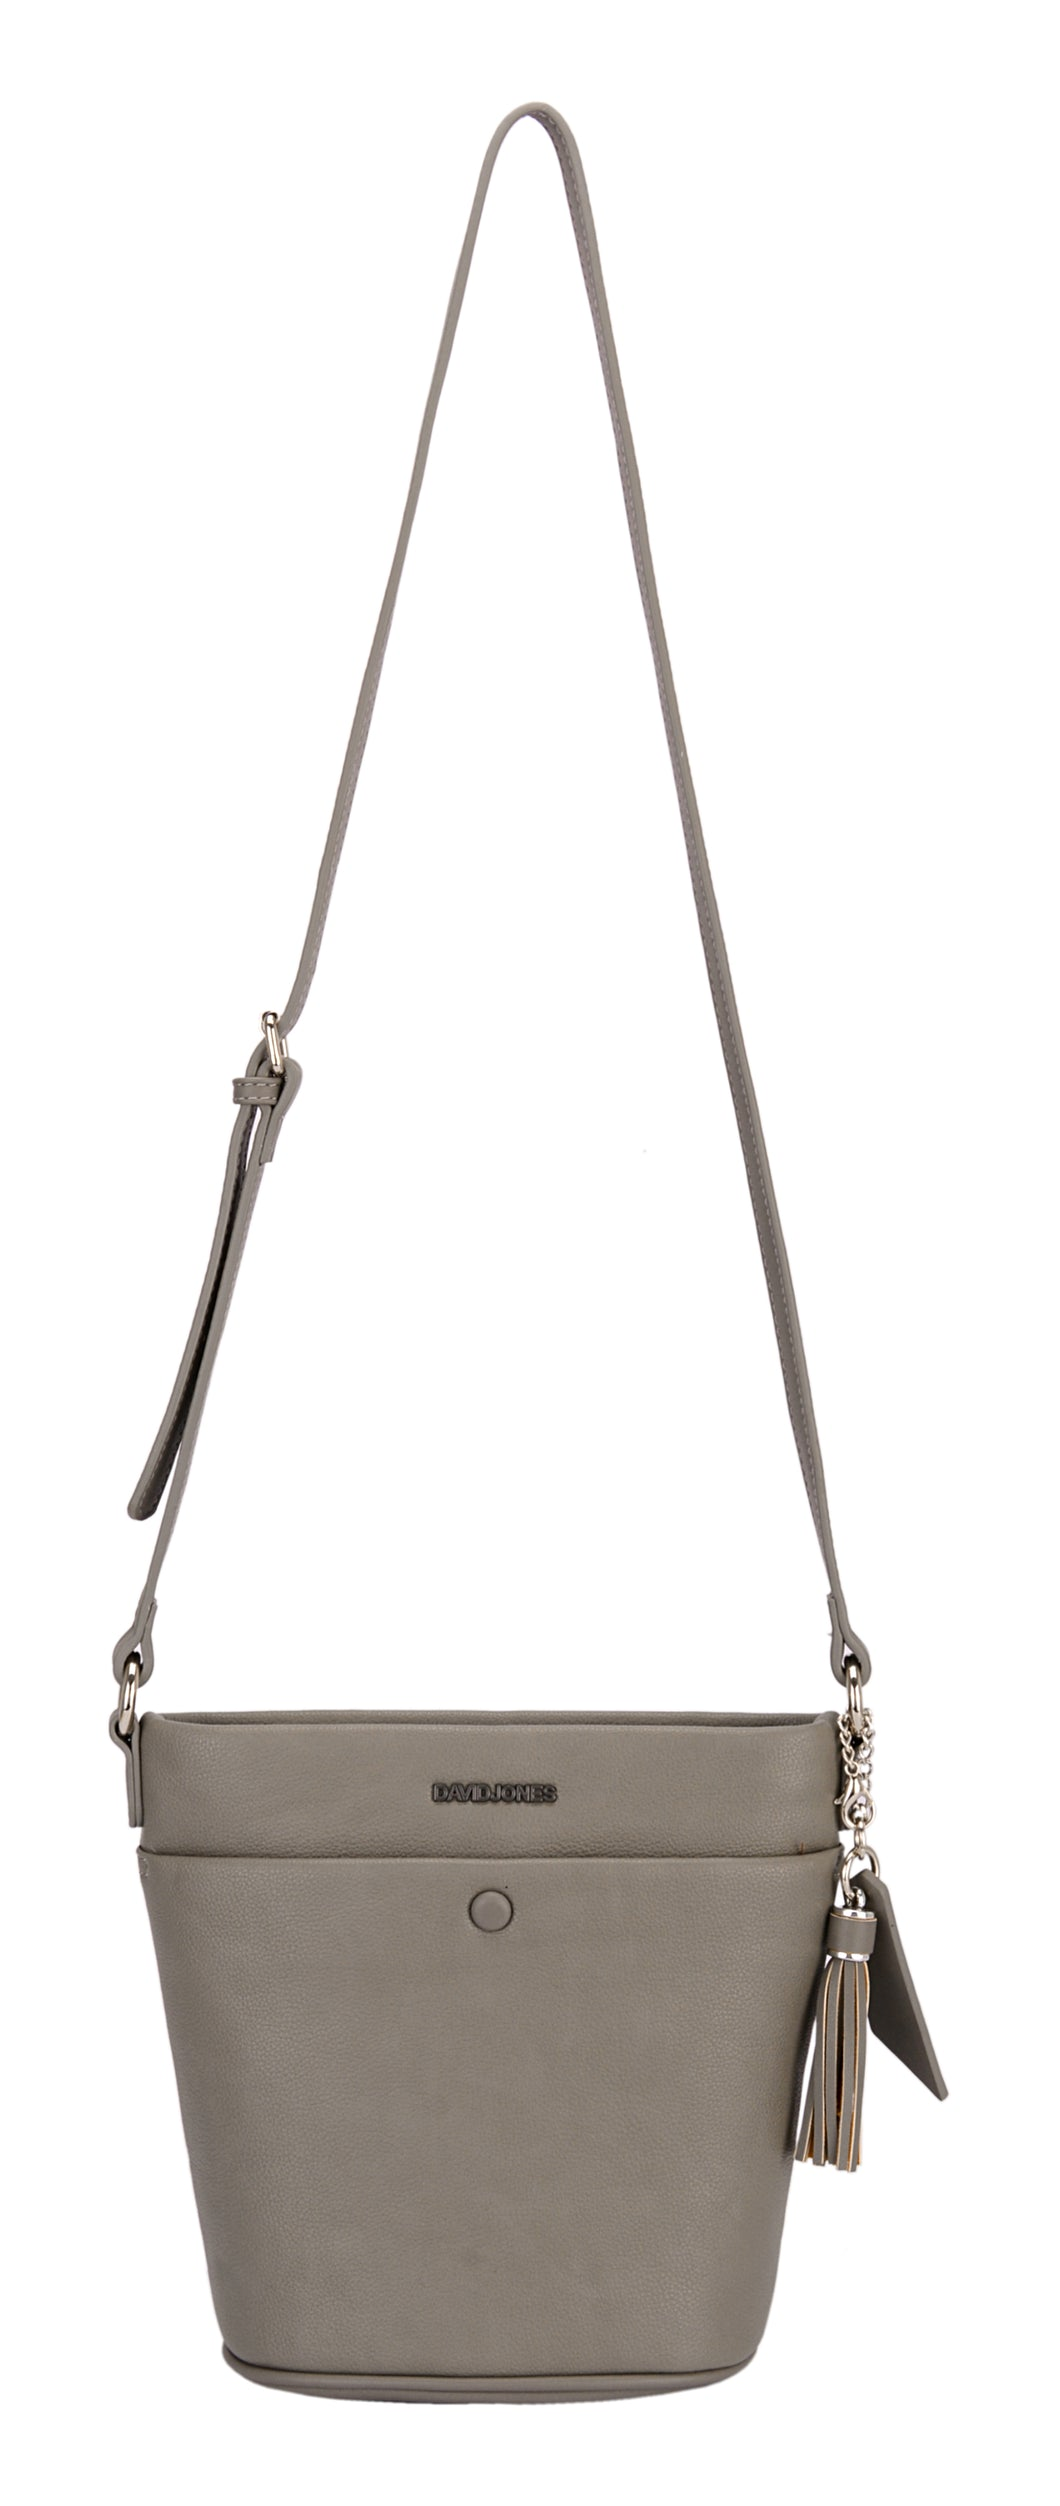 David Jones Bucket Cross Over Bag - 5 Colours